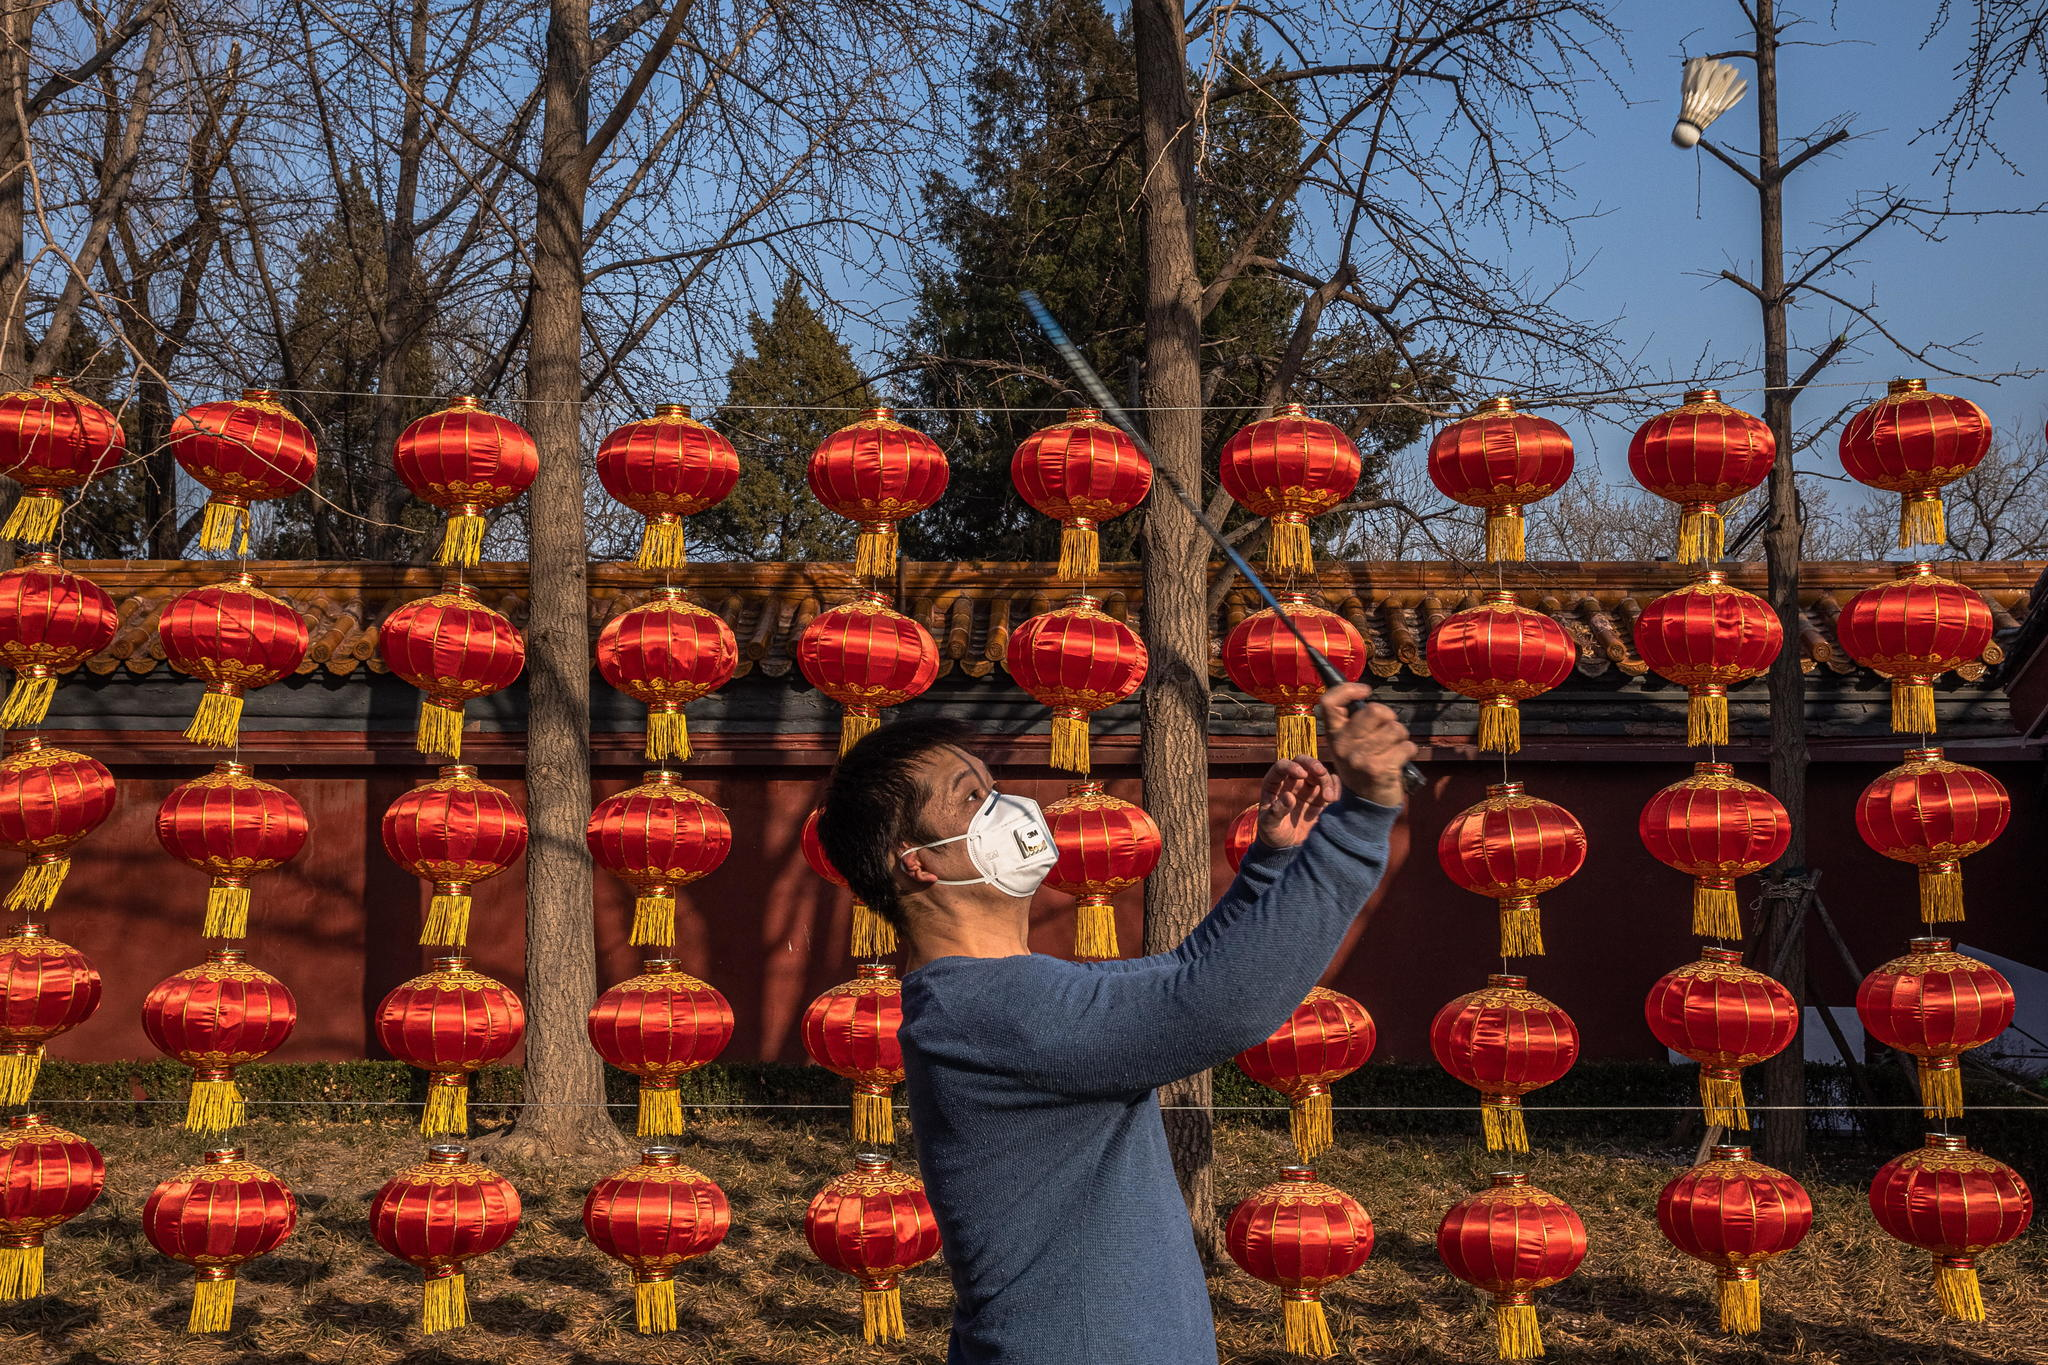 Beijing (China).- A man wearing a protective face mask plays badminton at Jingshan Park in Beijing, China, 23 February 2020. The outbreak of lt;HIT gt;Covid lt;/HIT gt;-19 coronavirus, which originated in the Chinese city of Wuhan, has so far killed at least 2,467 people and infected over 78,000 others worldwide, mostly in China. EPA/